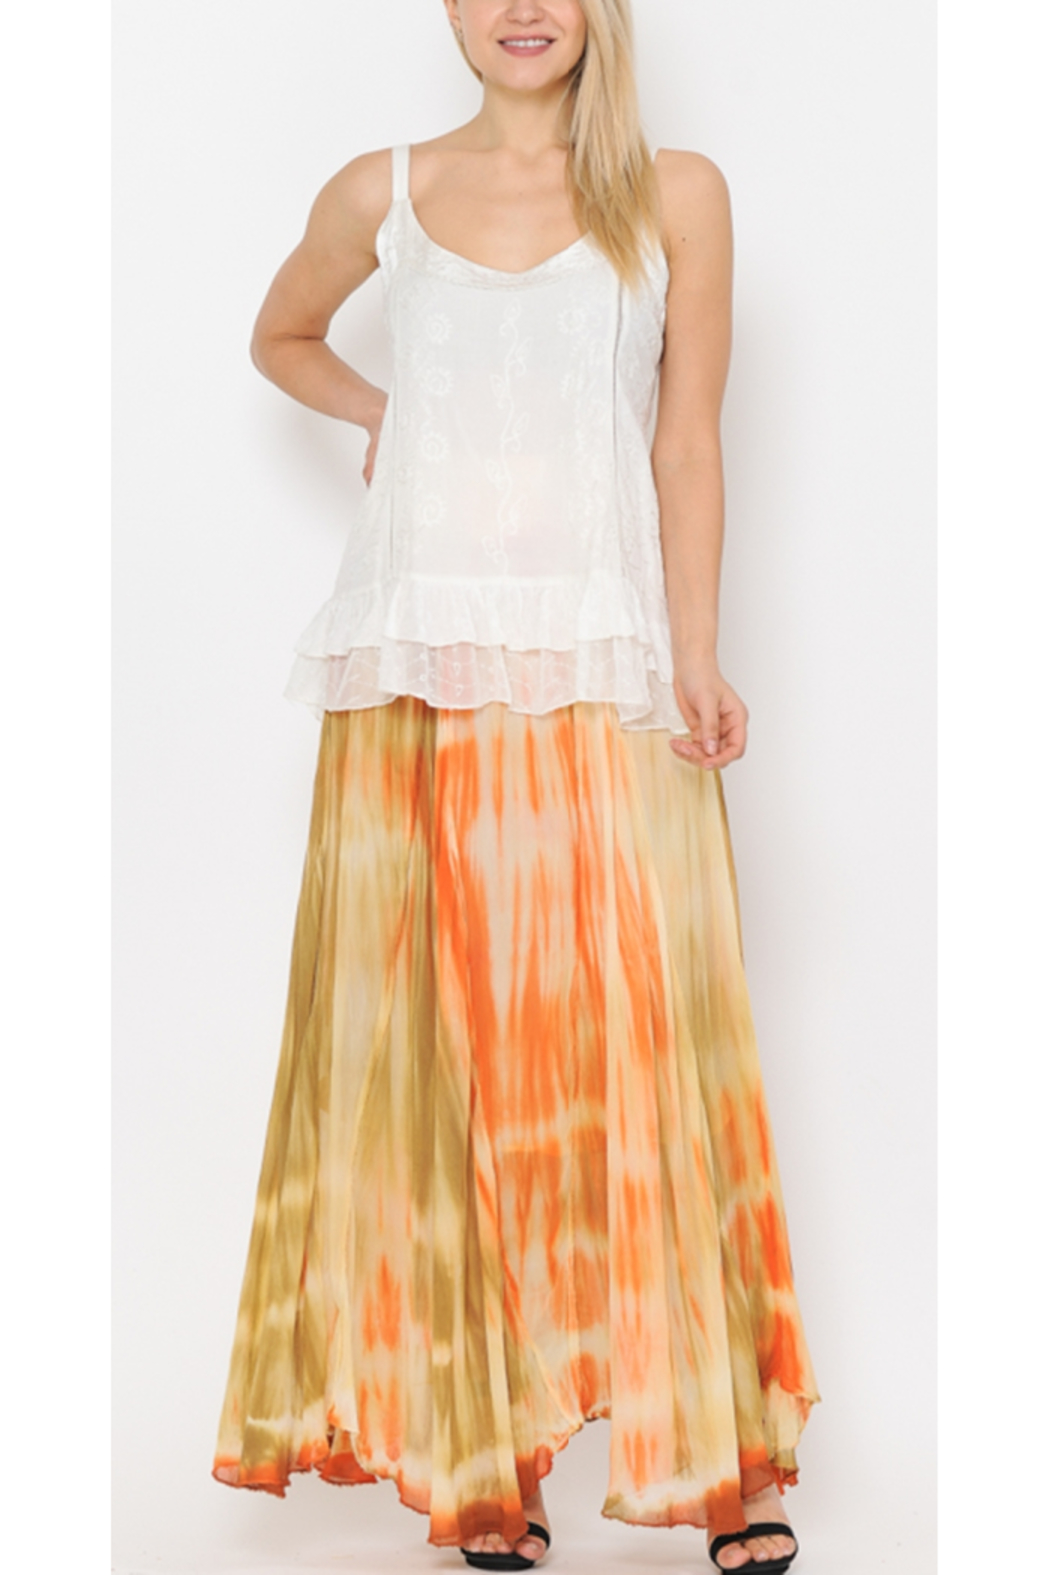 Apparel Love ORANGE OMBRE TIE DYE SKIRT - Front Cropped Image